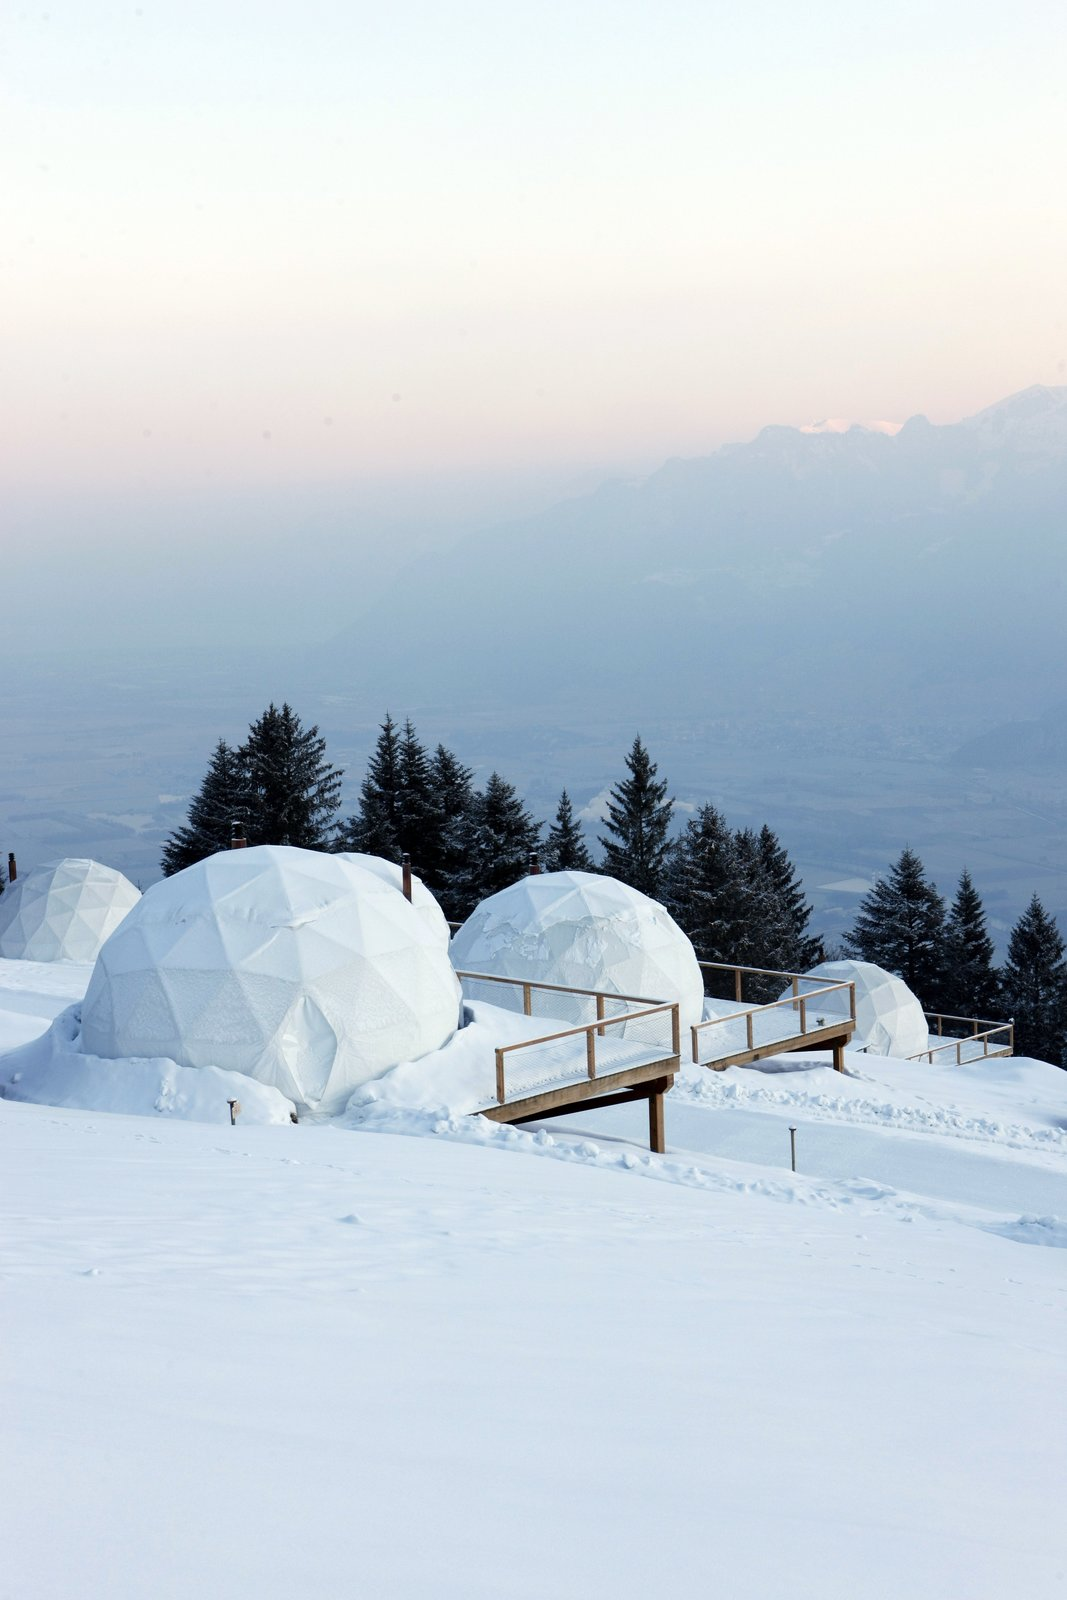 Exterior, Dome, Prefab, Cabin, Glass, and Tent The geodesic domes look like igloos in the snowy Alpine landscape.  Best Exterior Prefab Glass Dome Photos from Go Eco-Friendly Glamping in These Geodesic Domes in the Swiss Alps